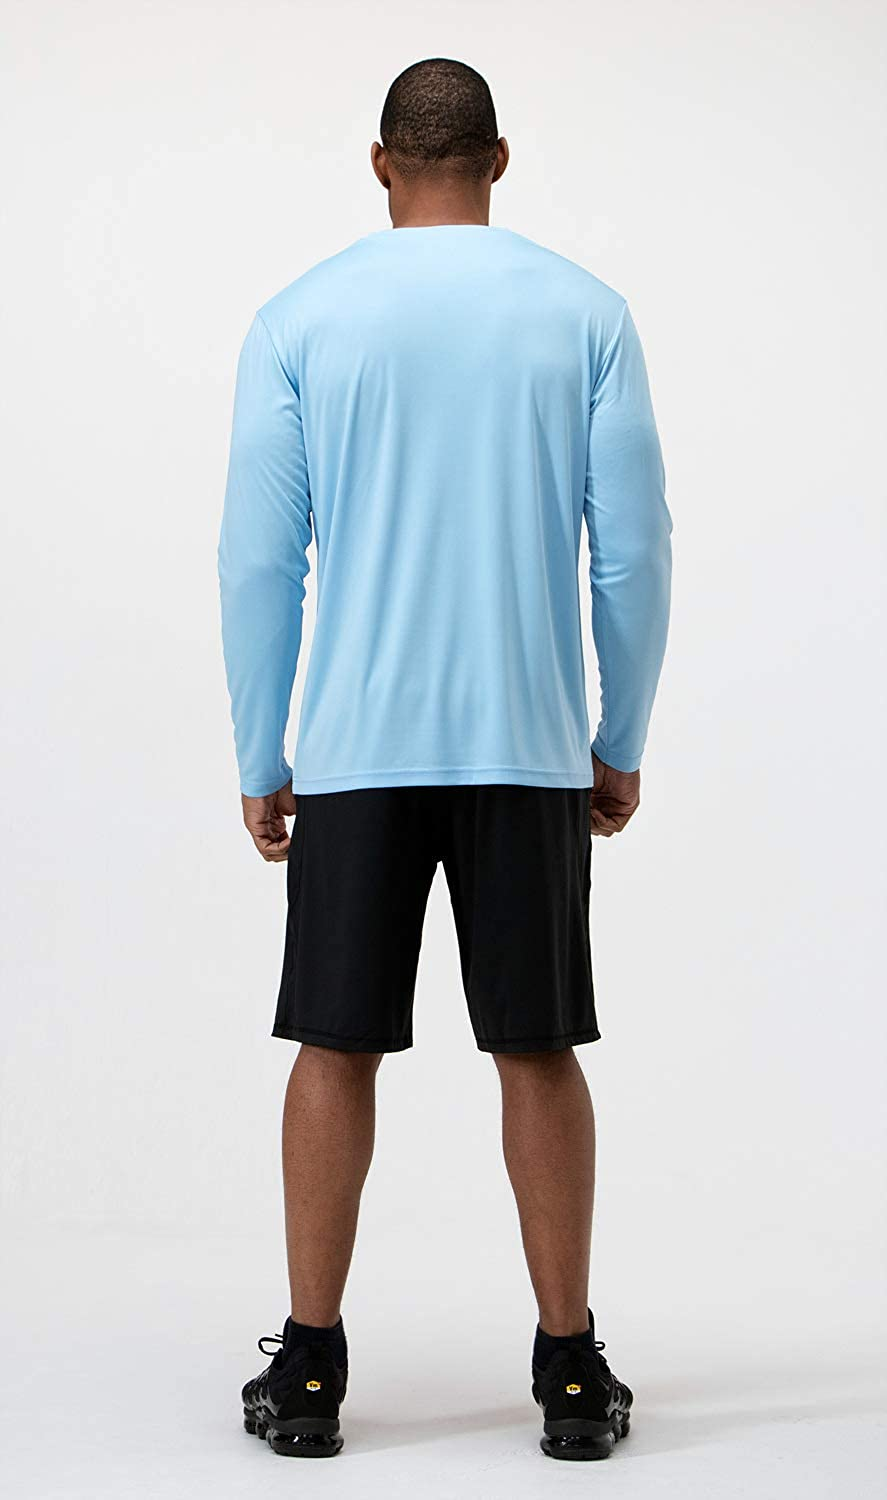 UPF 50+ Outdoor Long Sleeve Workout Performance T-Shirts DEVOPS Mens 2 Pack UV Sun Protection